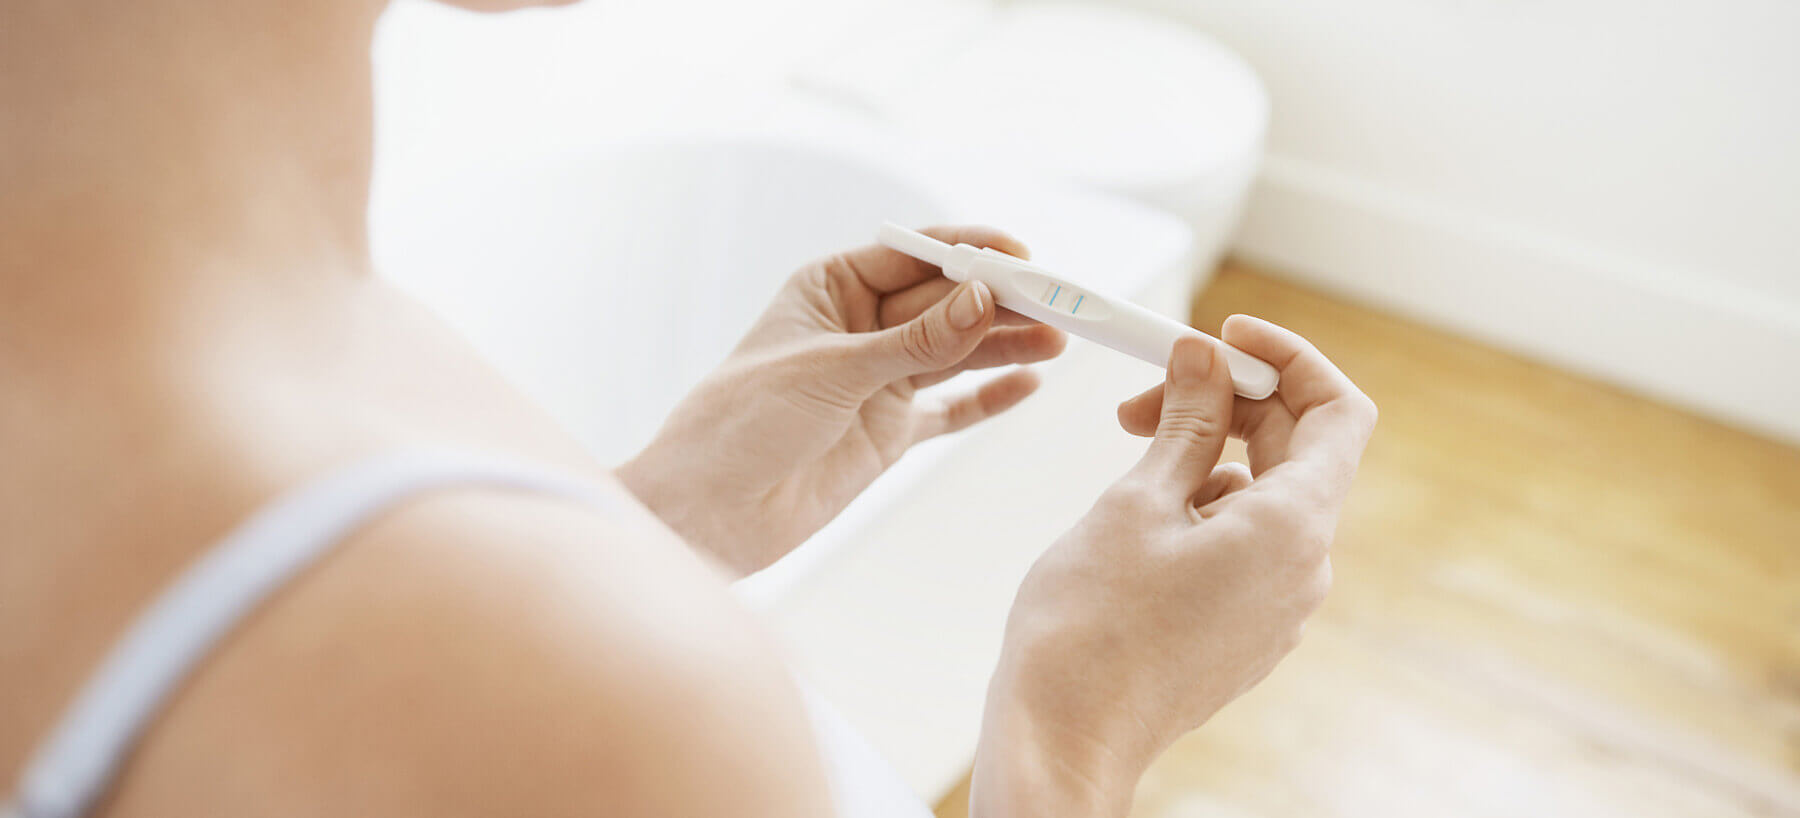 Am I Pregnant? Tips on using a pregnancy test kit